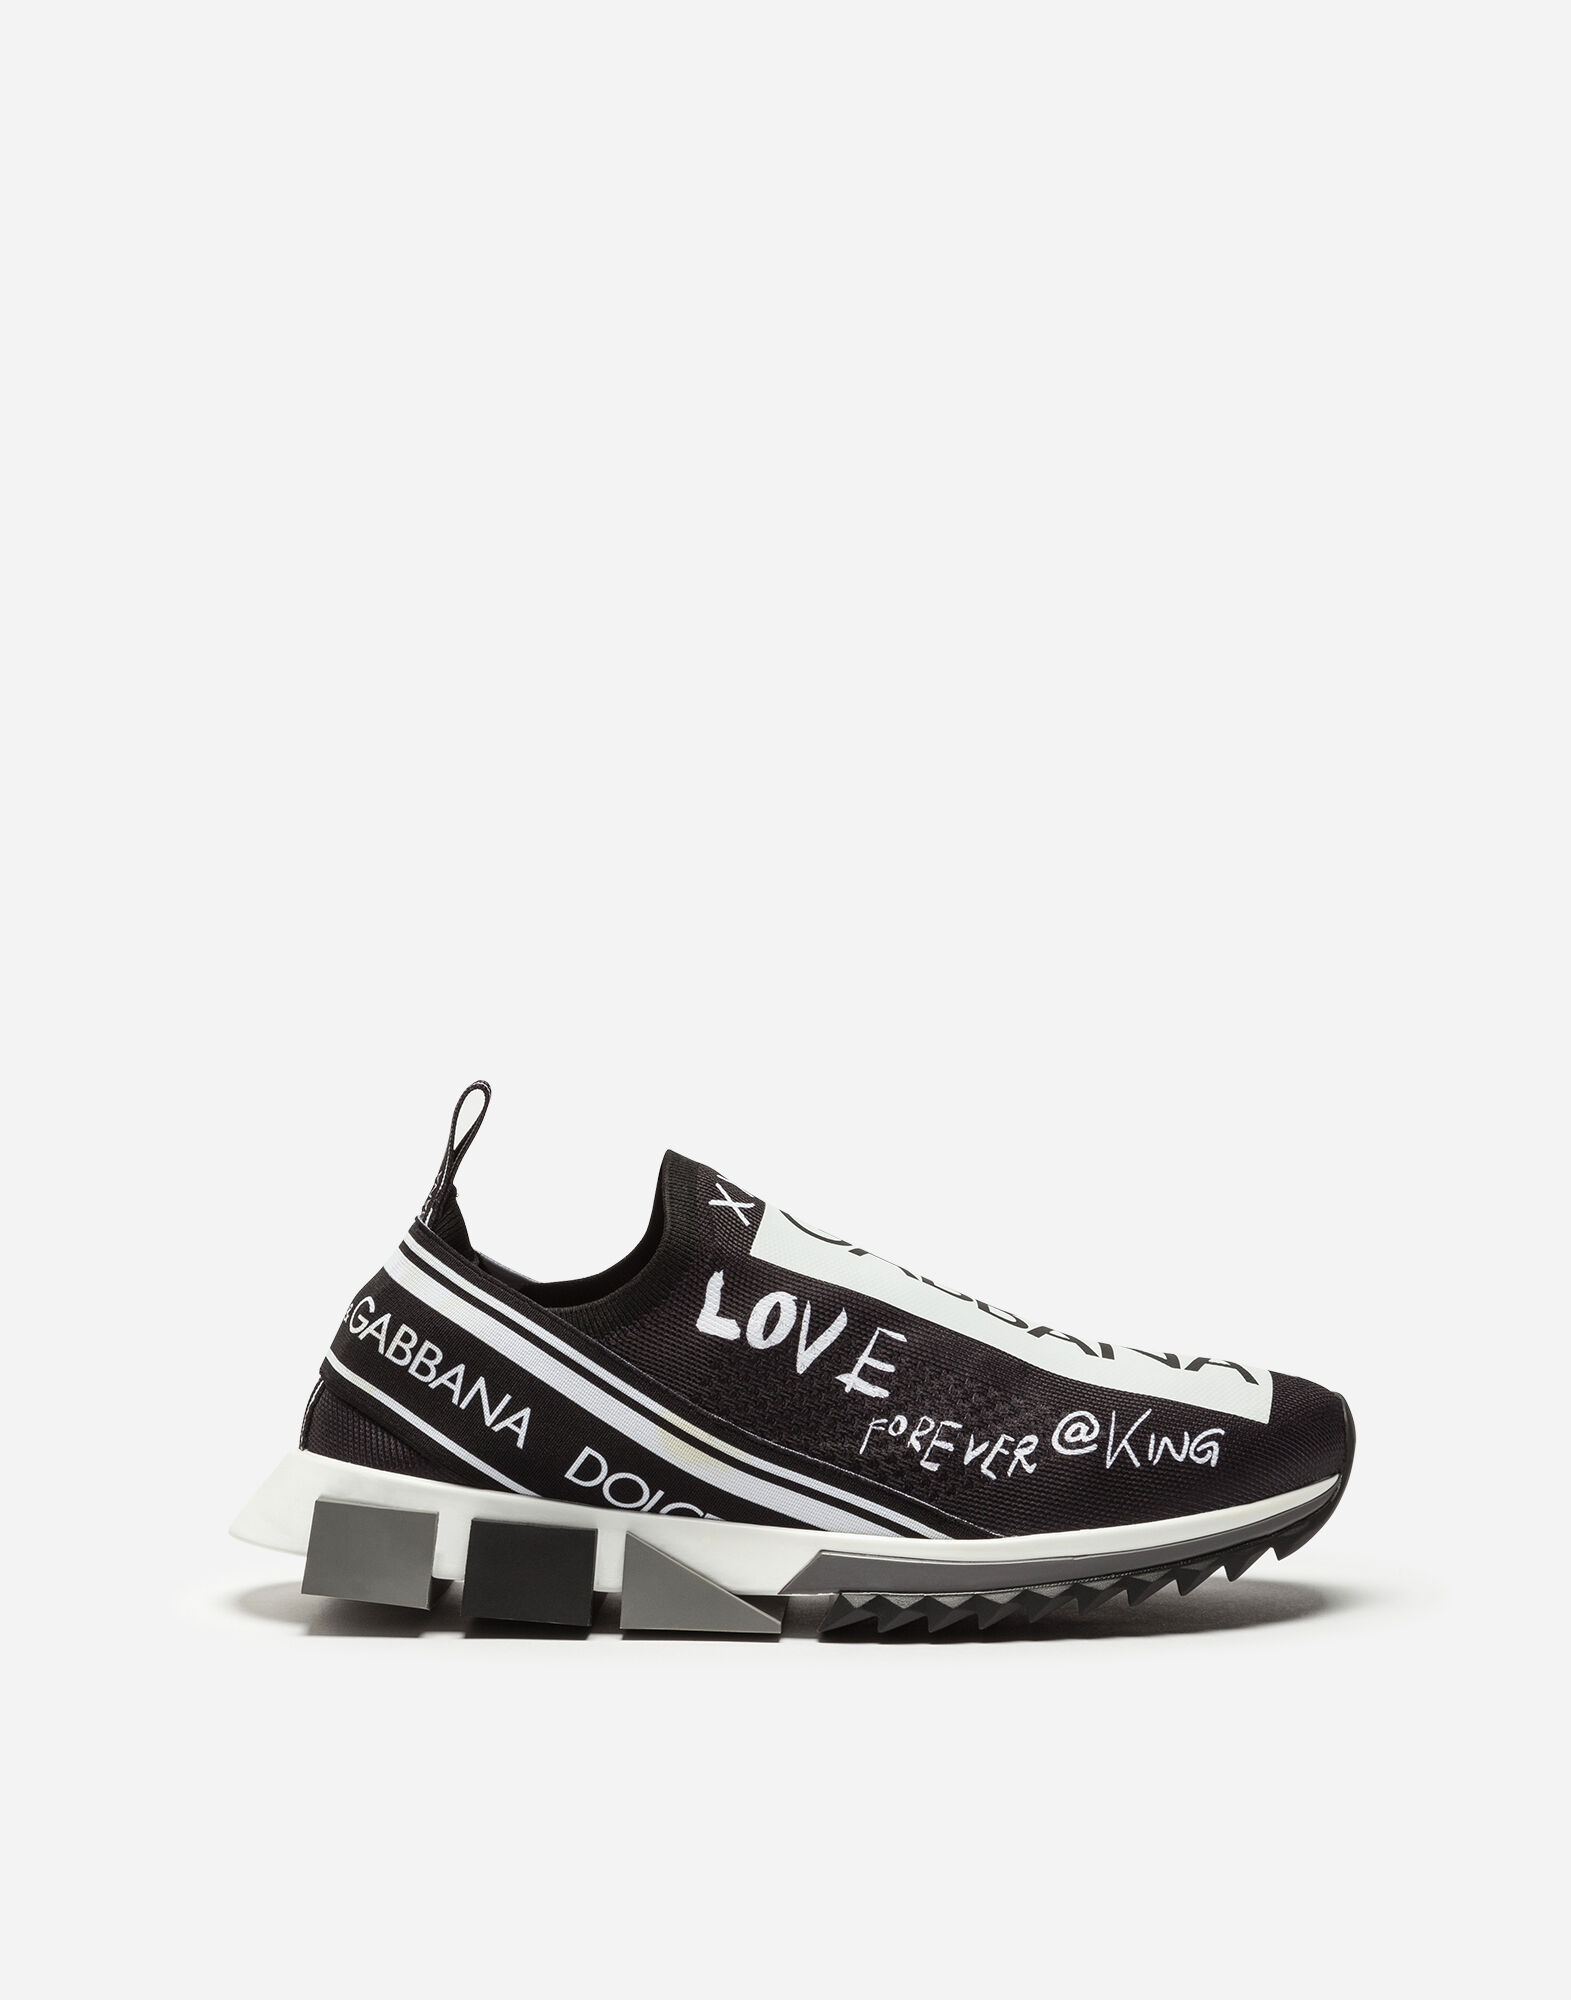 Men'S Sorrento Logo-Stripe Slip-On Trainer Sneakers in Black from DOLCE & GABBANA